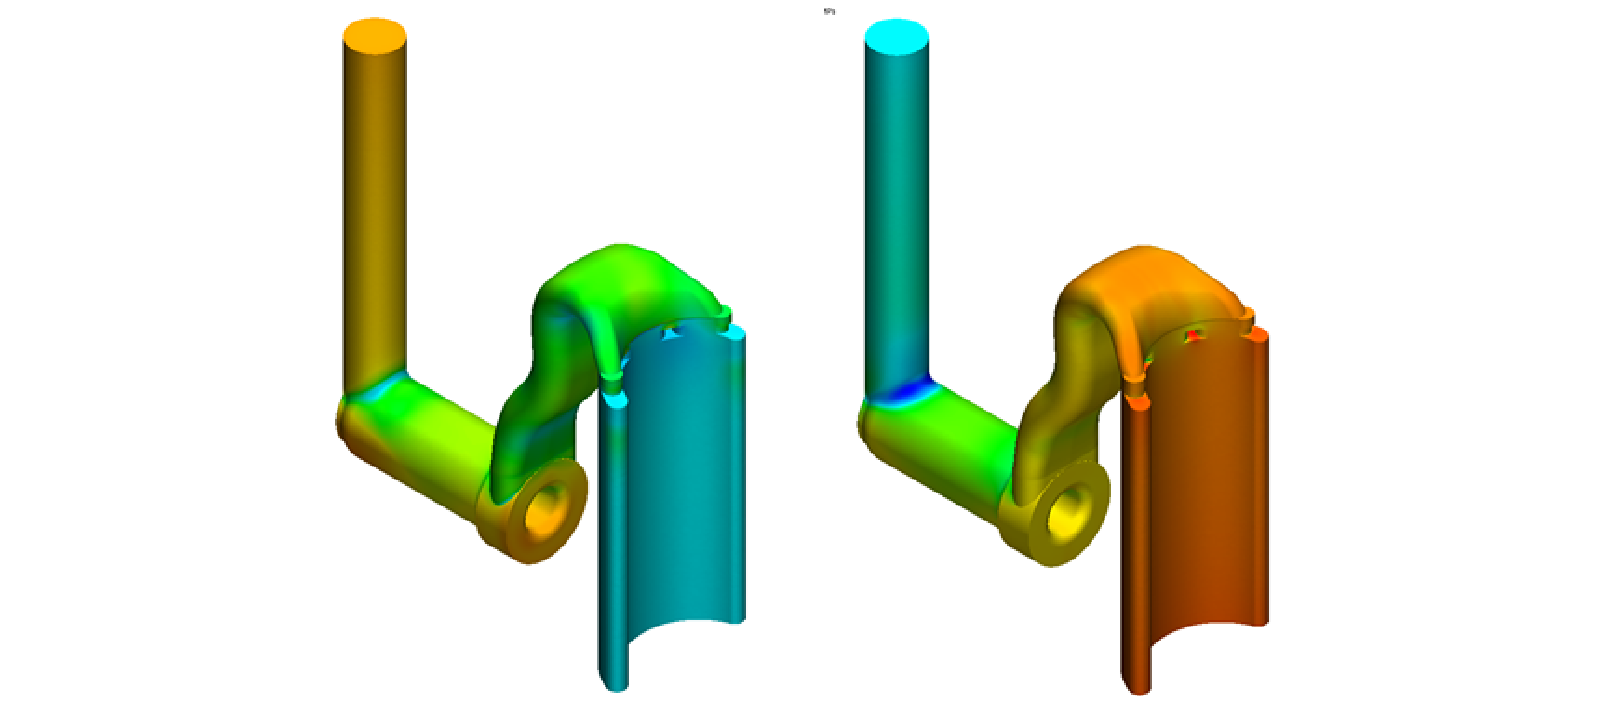 The CFD analysis determined the pressure drop for the piston pump in both pump and motor mode. The pressure drop across bends, expansions, constrictions and other discontinuities is dependent on the direction of flow